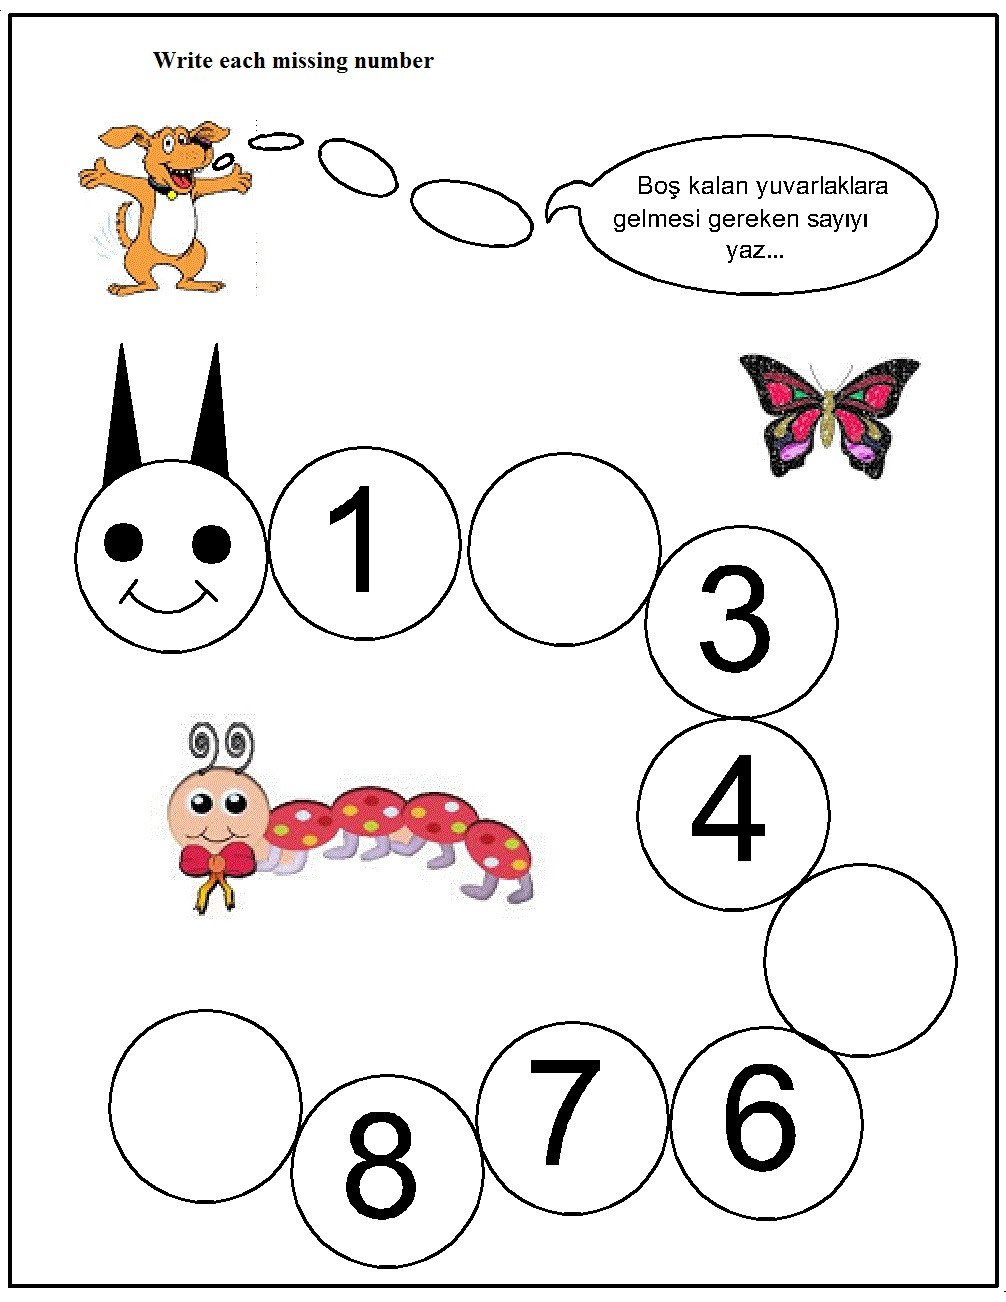 Missing Number Worksheets 1 10 Missing Number Worksheet for Kids 5